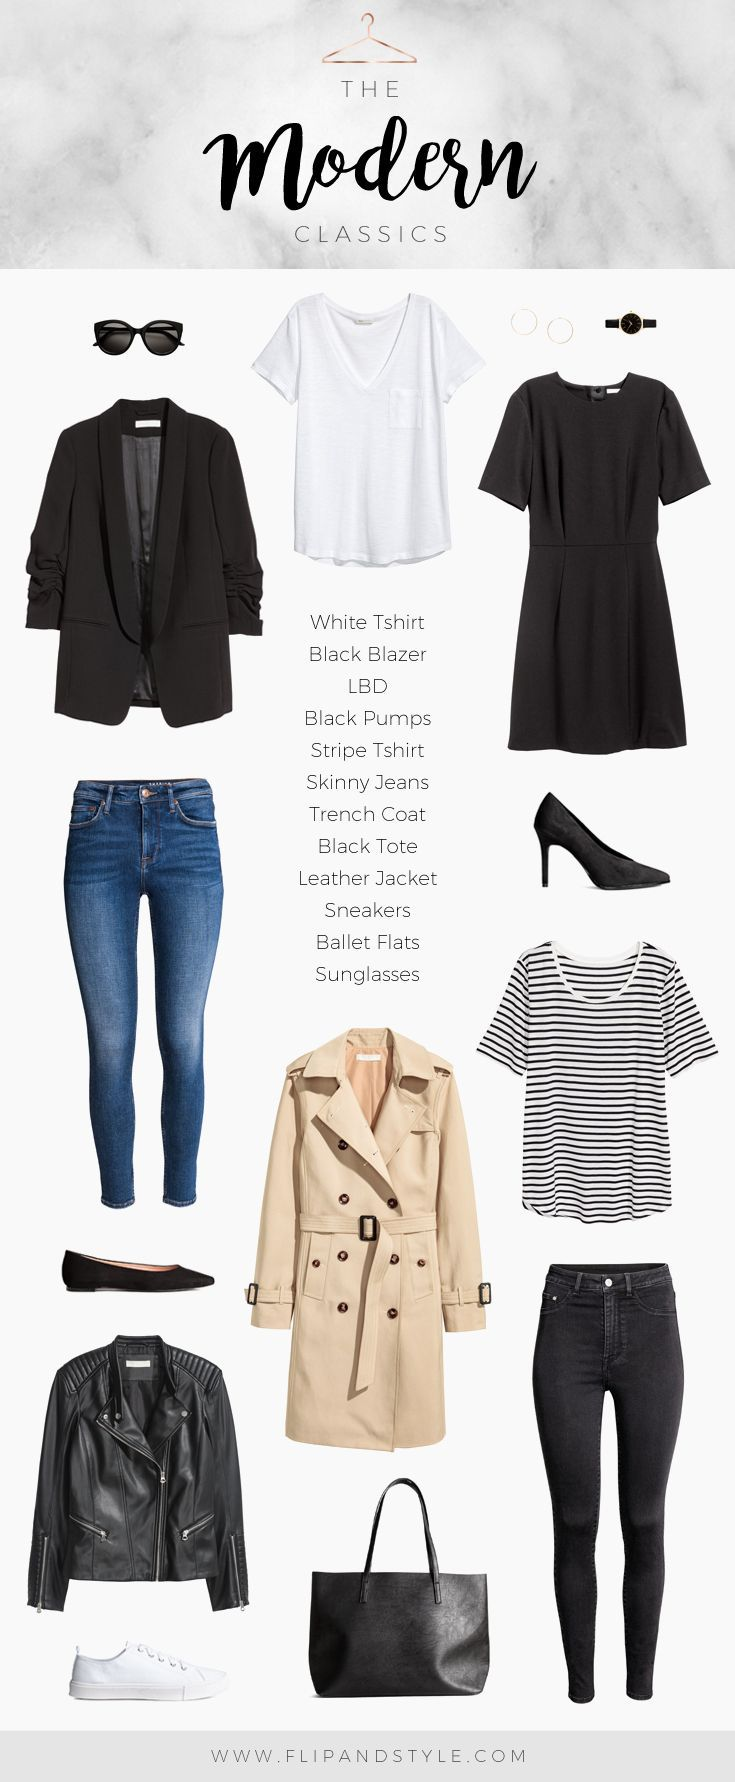 25+ Best Ideas About Capsule Wardrobe Casual On Pinterest